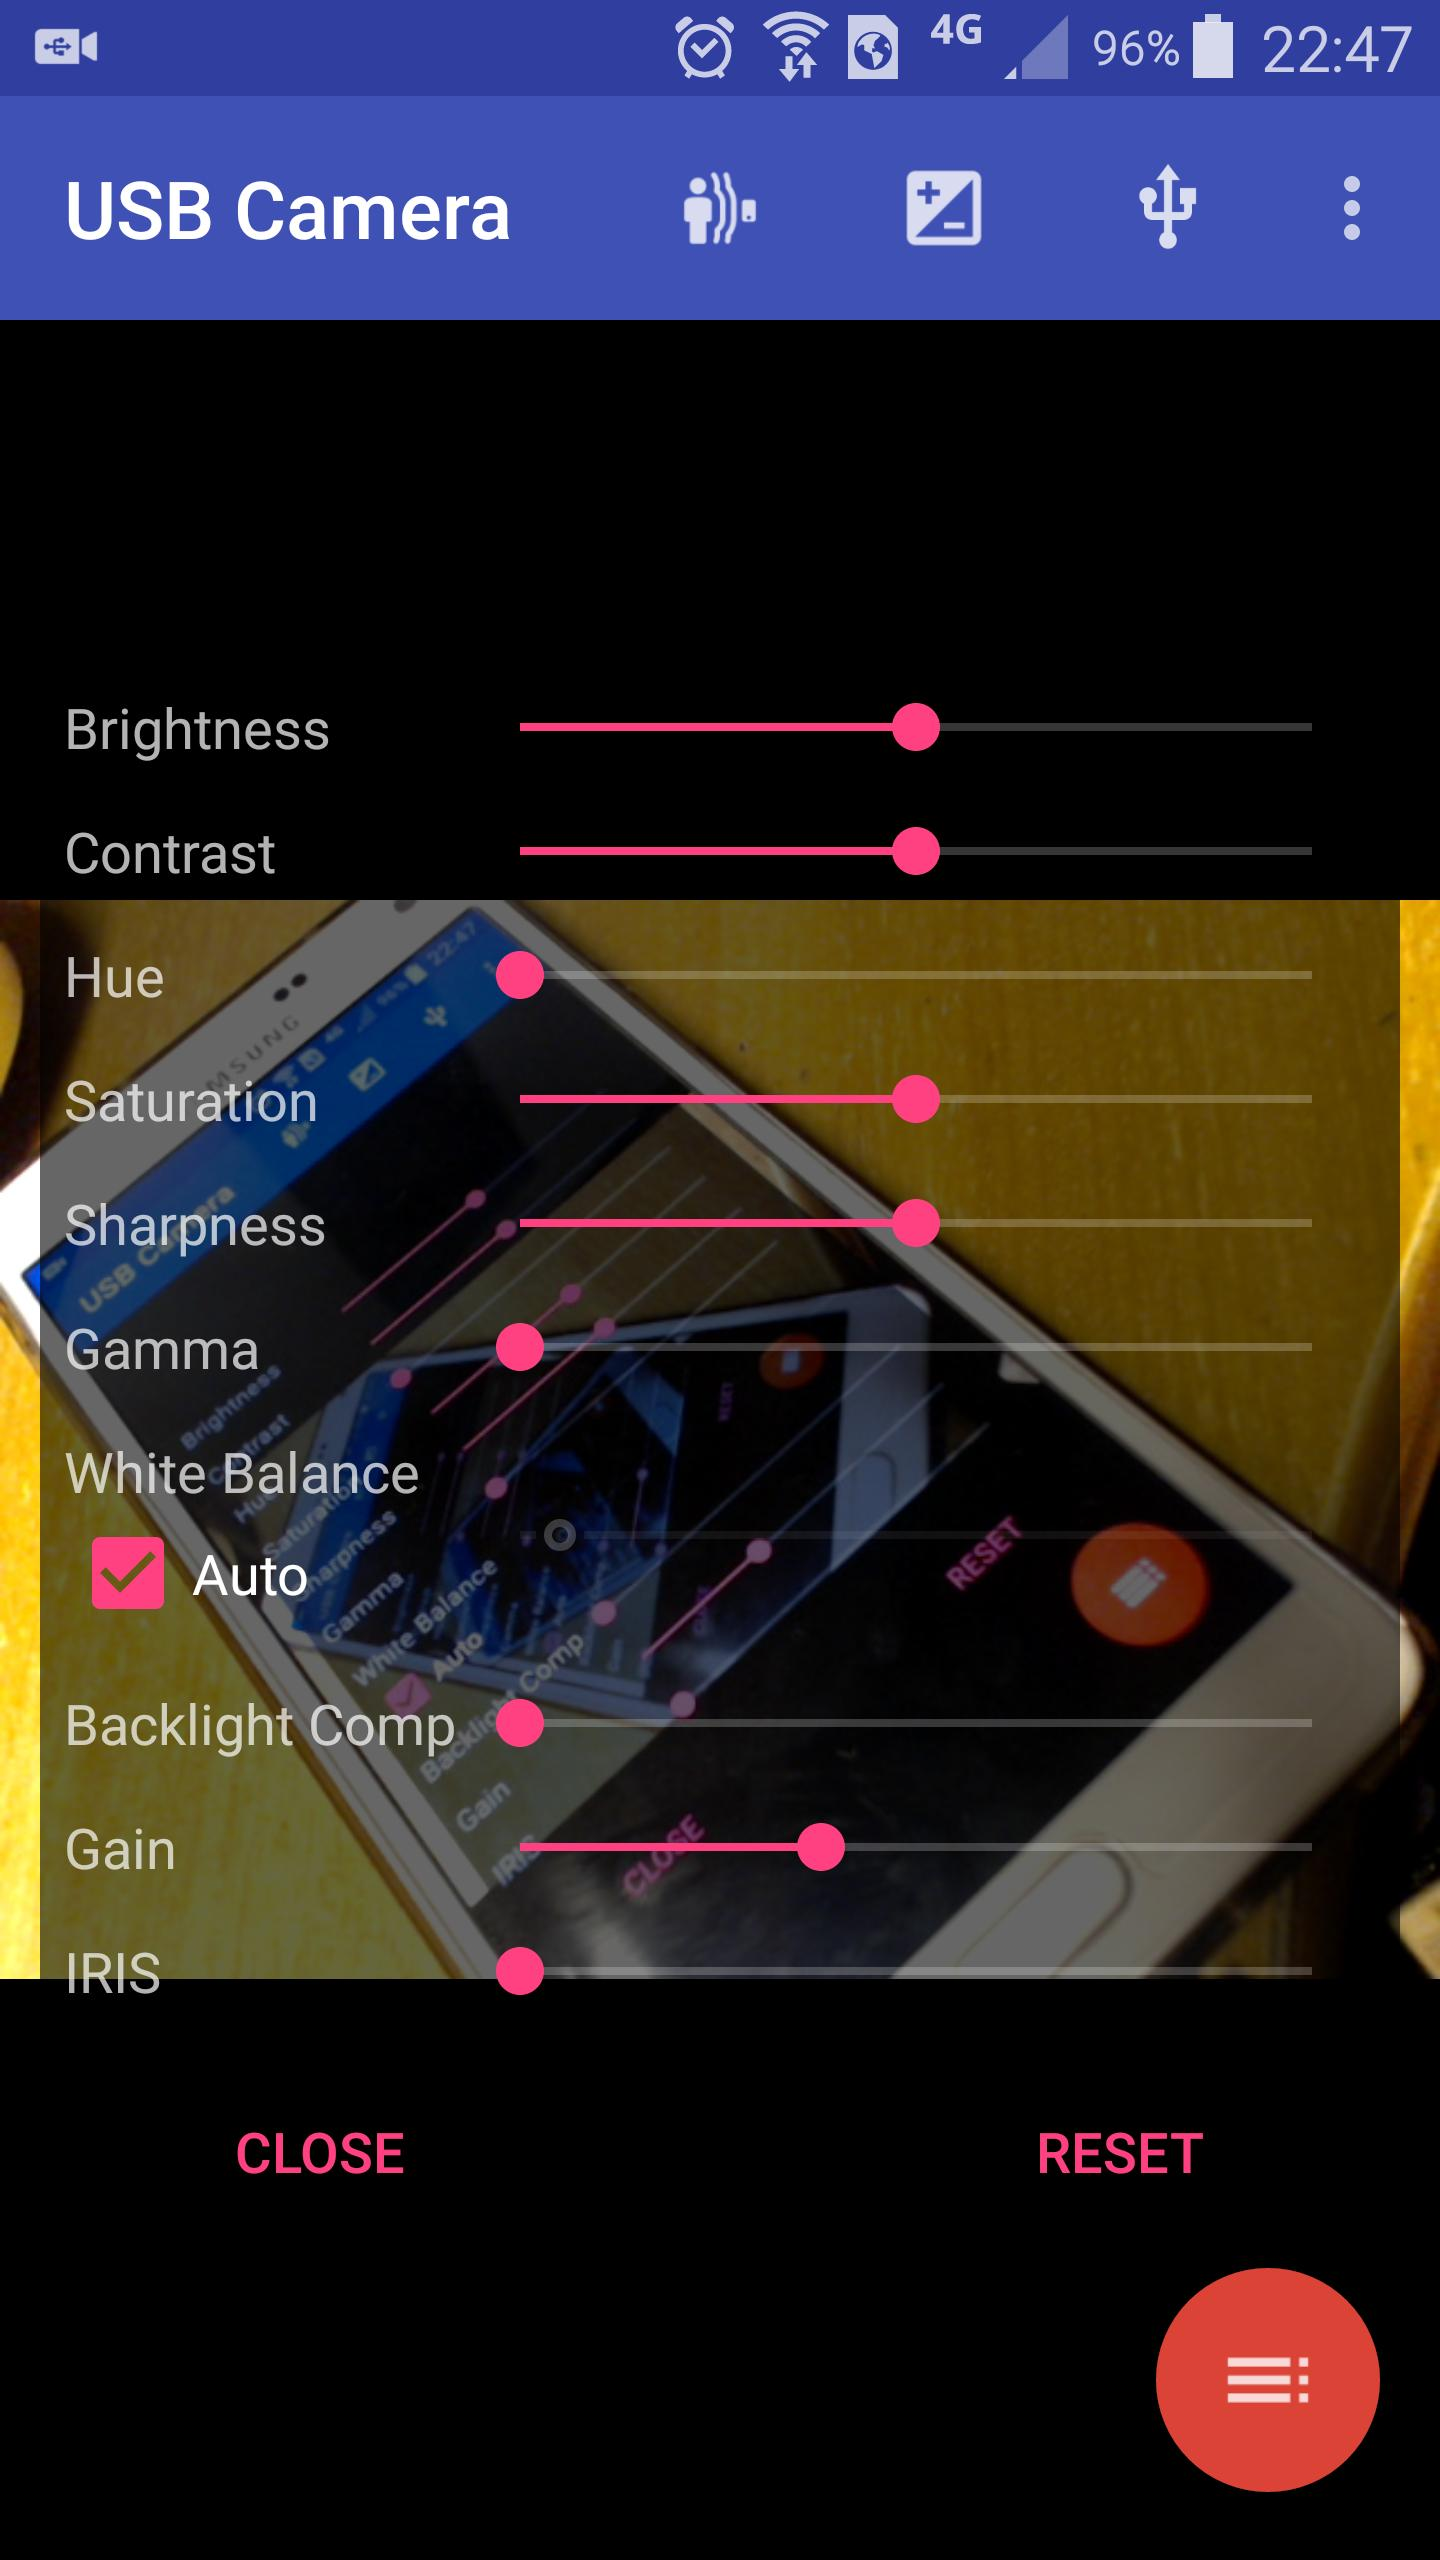 USB Camera for Android - APK Download